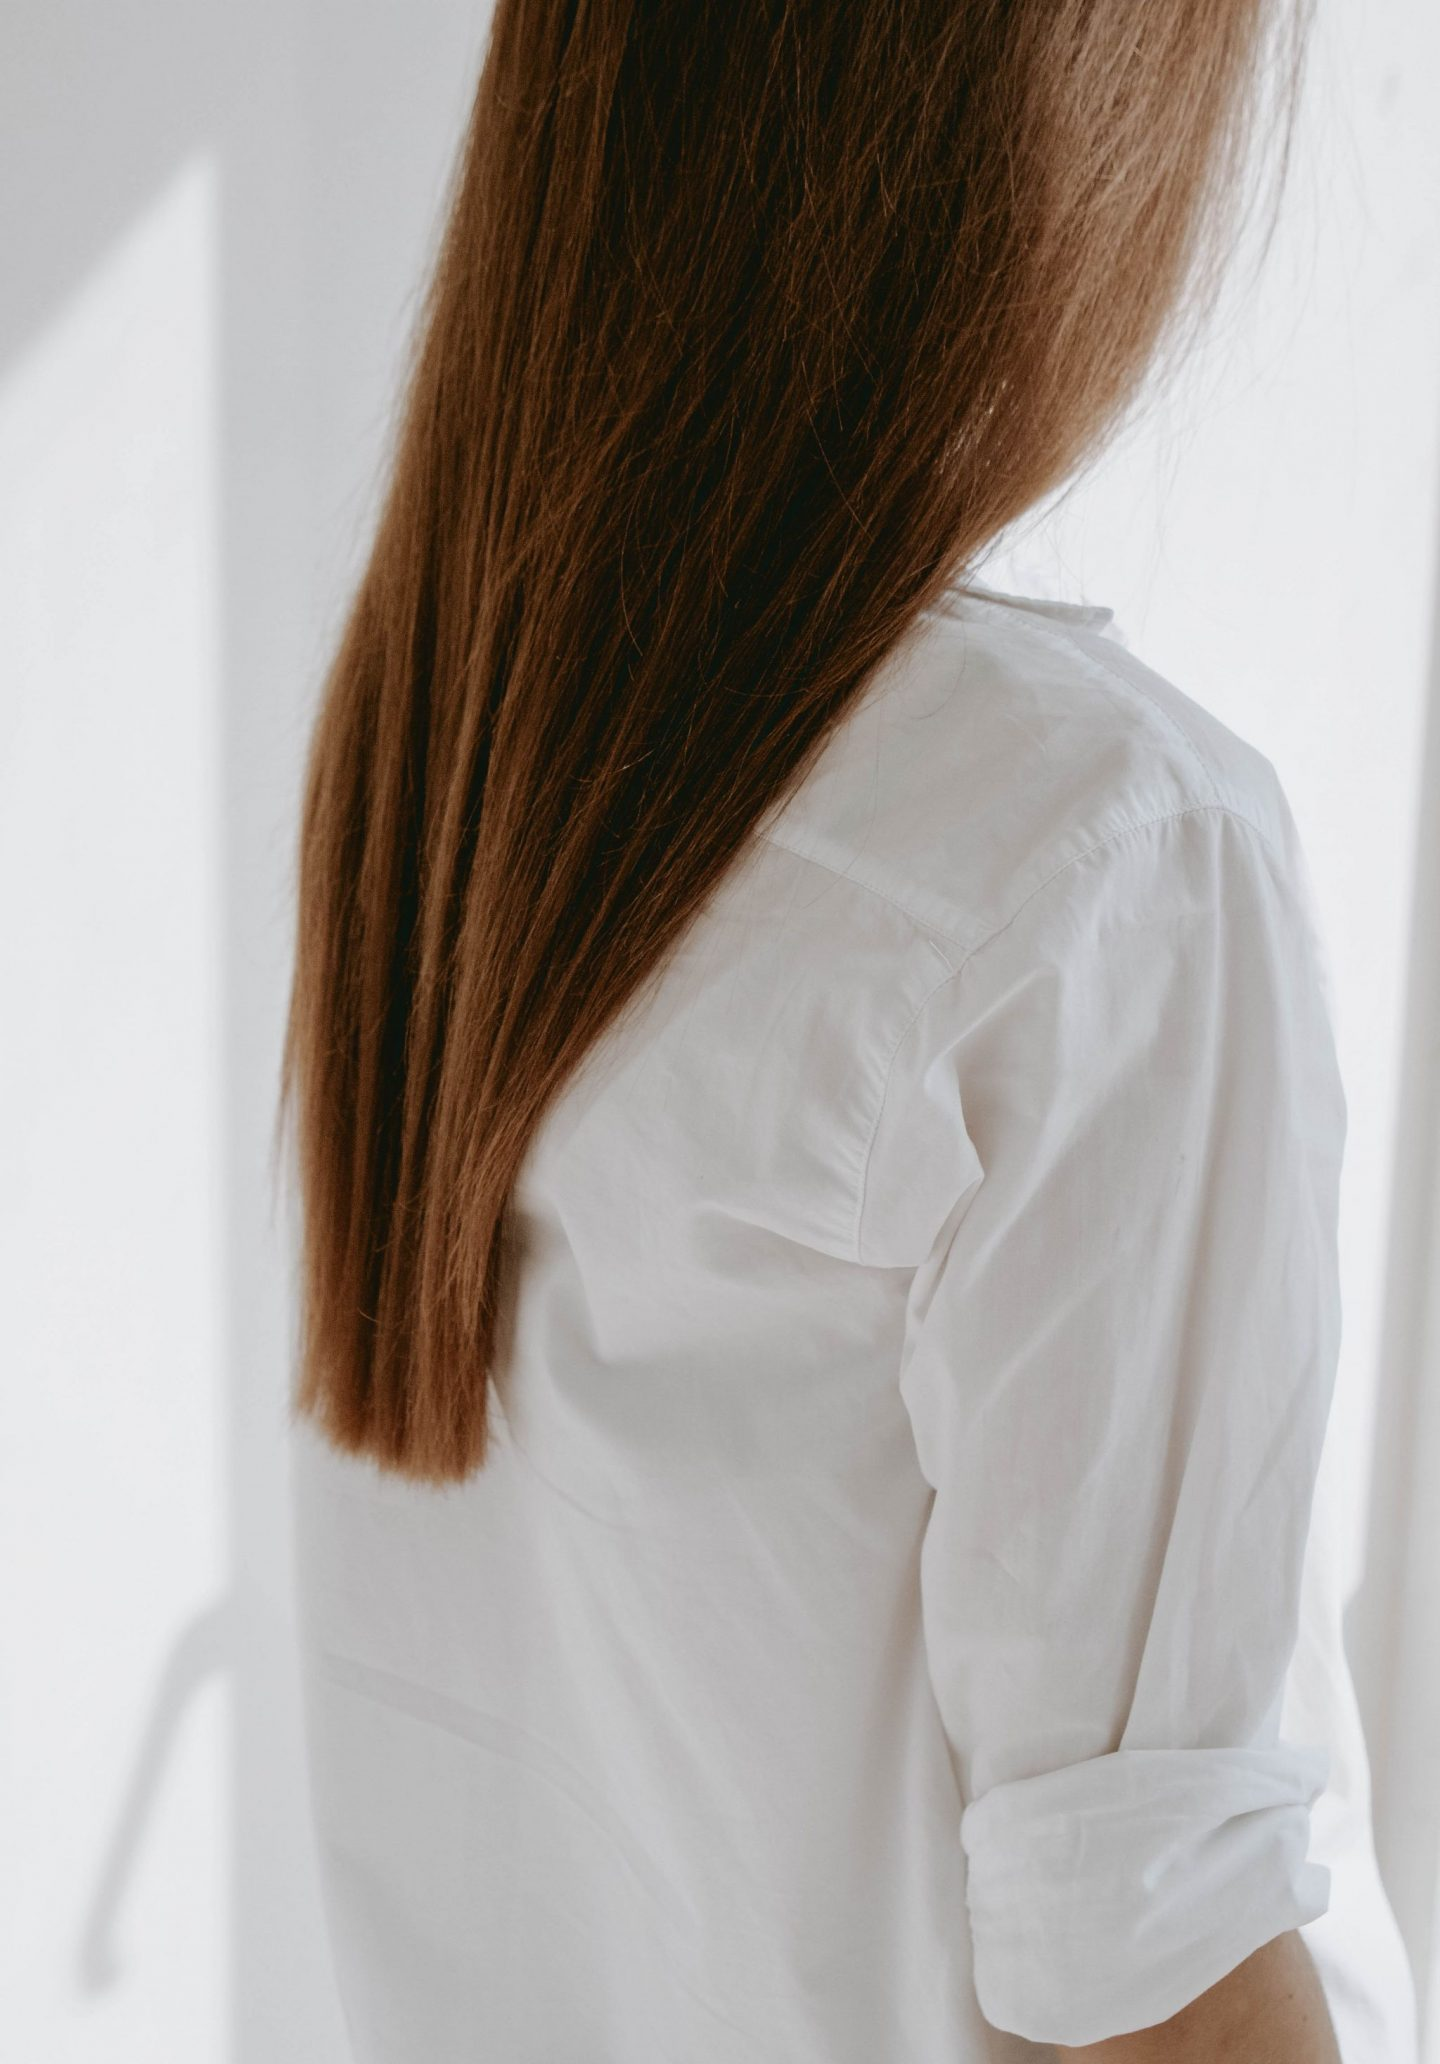 USEFUL TIPS TO TAKE CARE OF YOUR HAIR AND PRESERVE ITS HEALTH